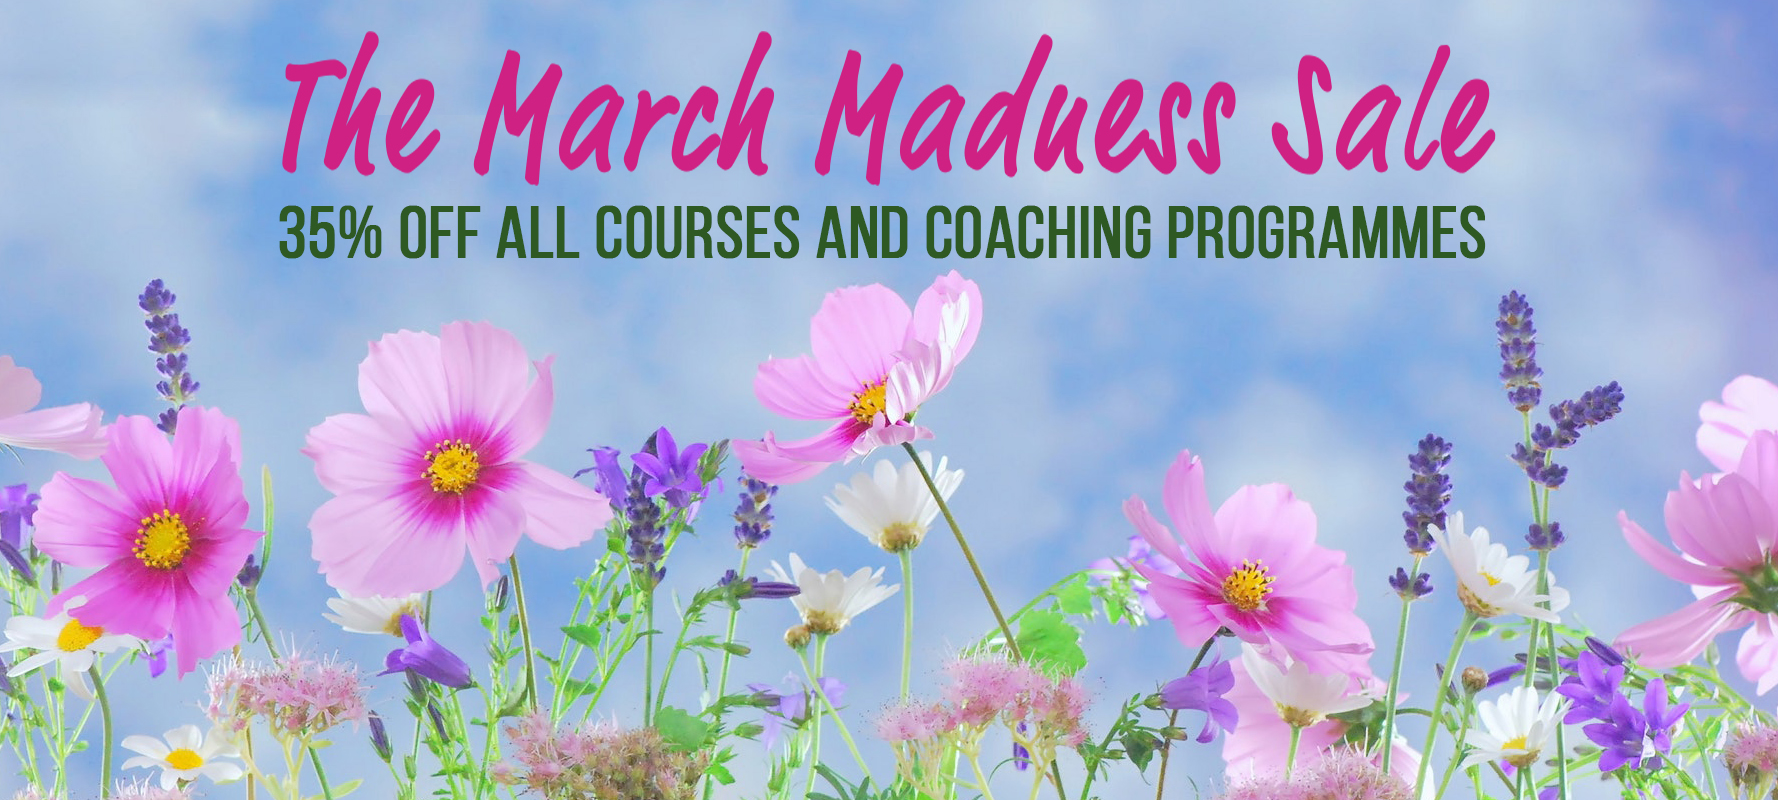 March Madness Sale website Banner.jpg